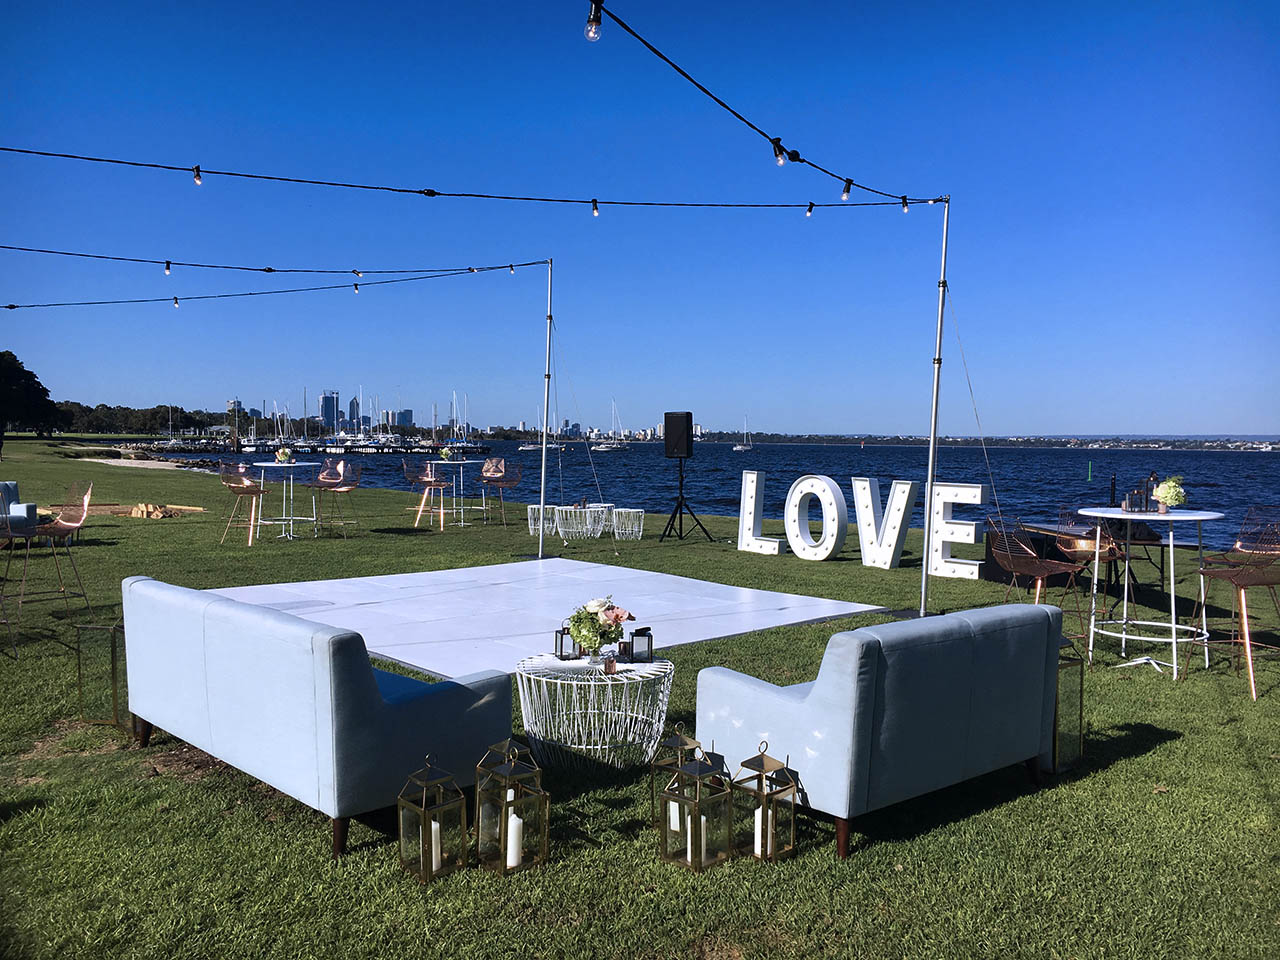 Gorgeous Daytime Riverside Setting With Couches And A Large Light-up Sculpture Of The Words